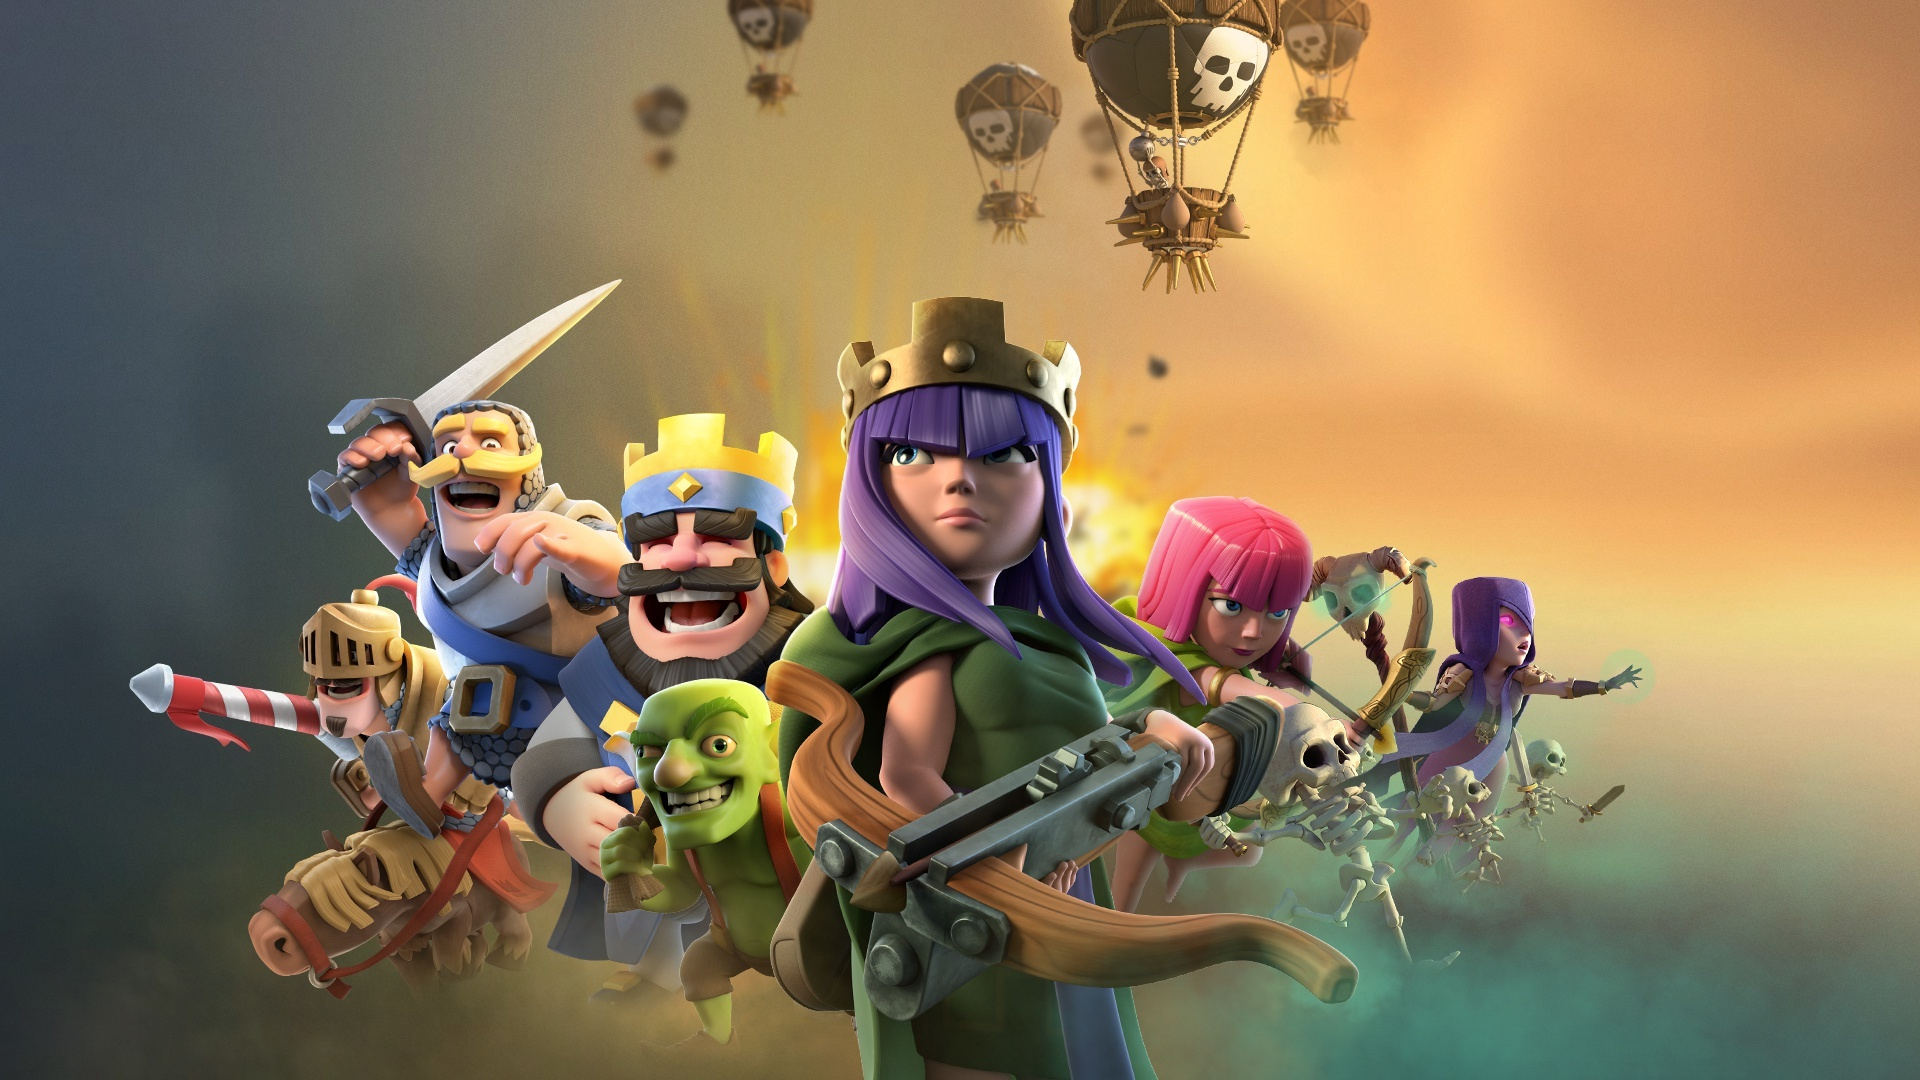 1920x1080 clash of clans clash royale supercell games laptop full hd 1080p hd 4k wallpapers - Clash royale 2560x1440 ...